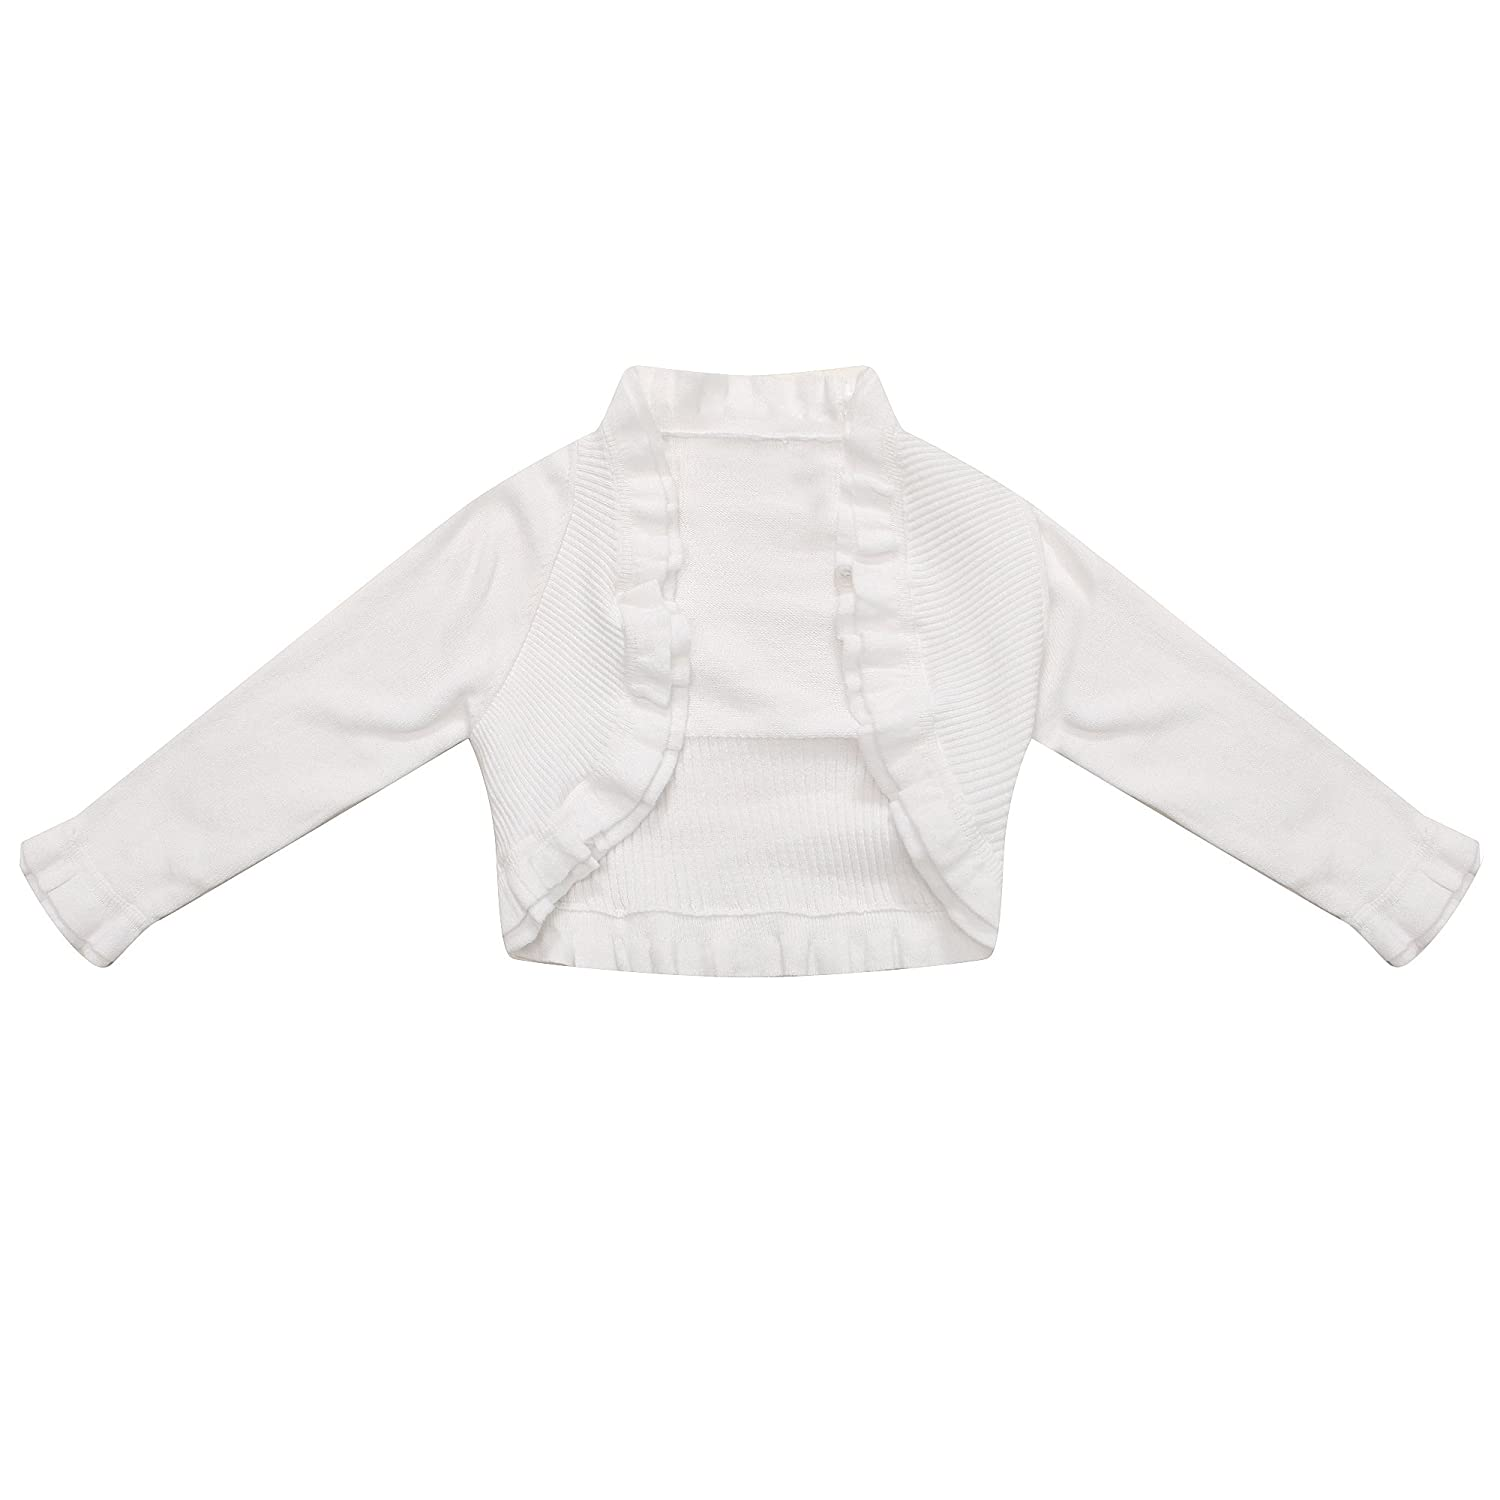 Richie House Girls' Cardigan Sweater with Ruffled Collar and Bottom RH1585